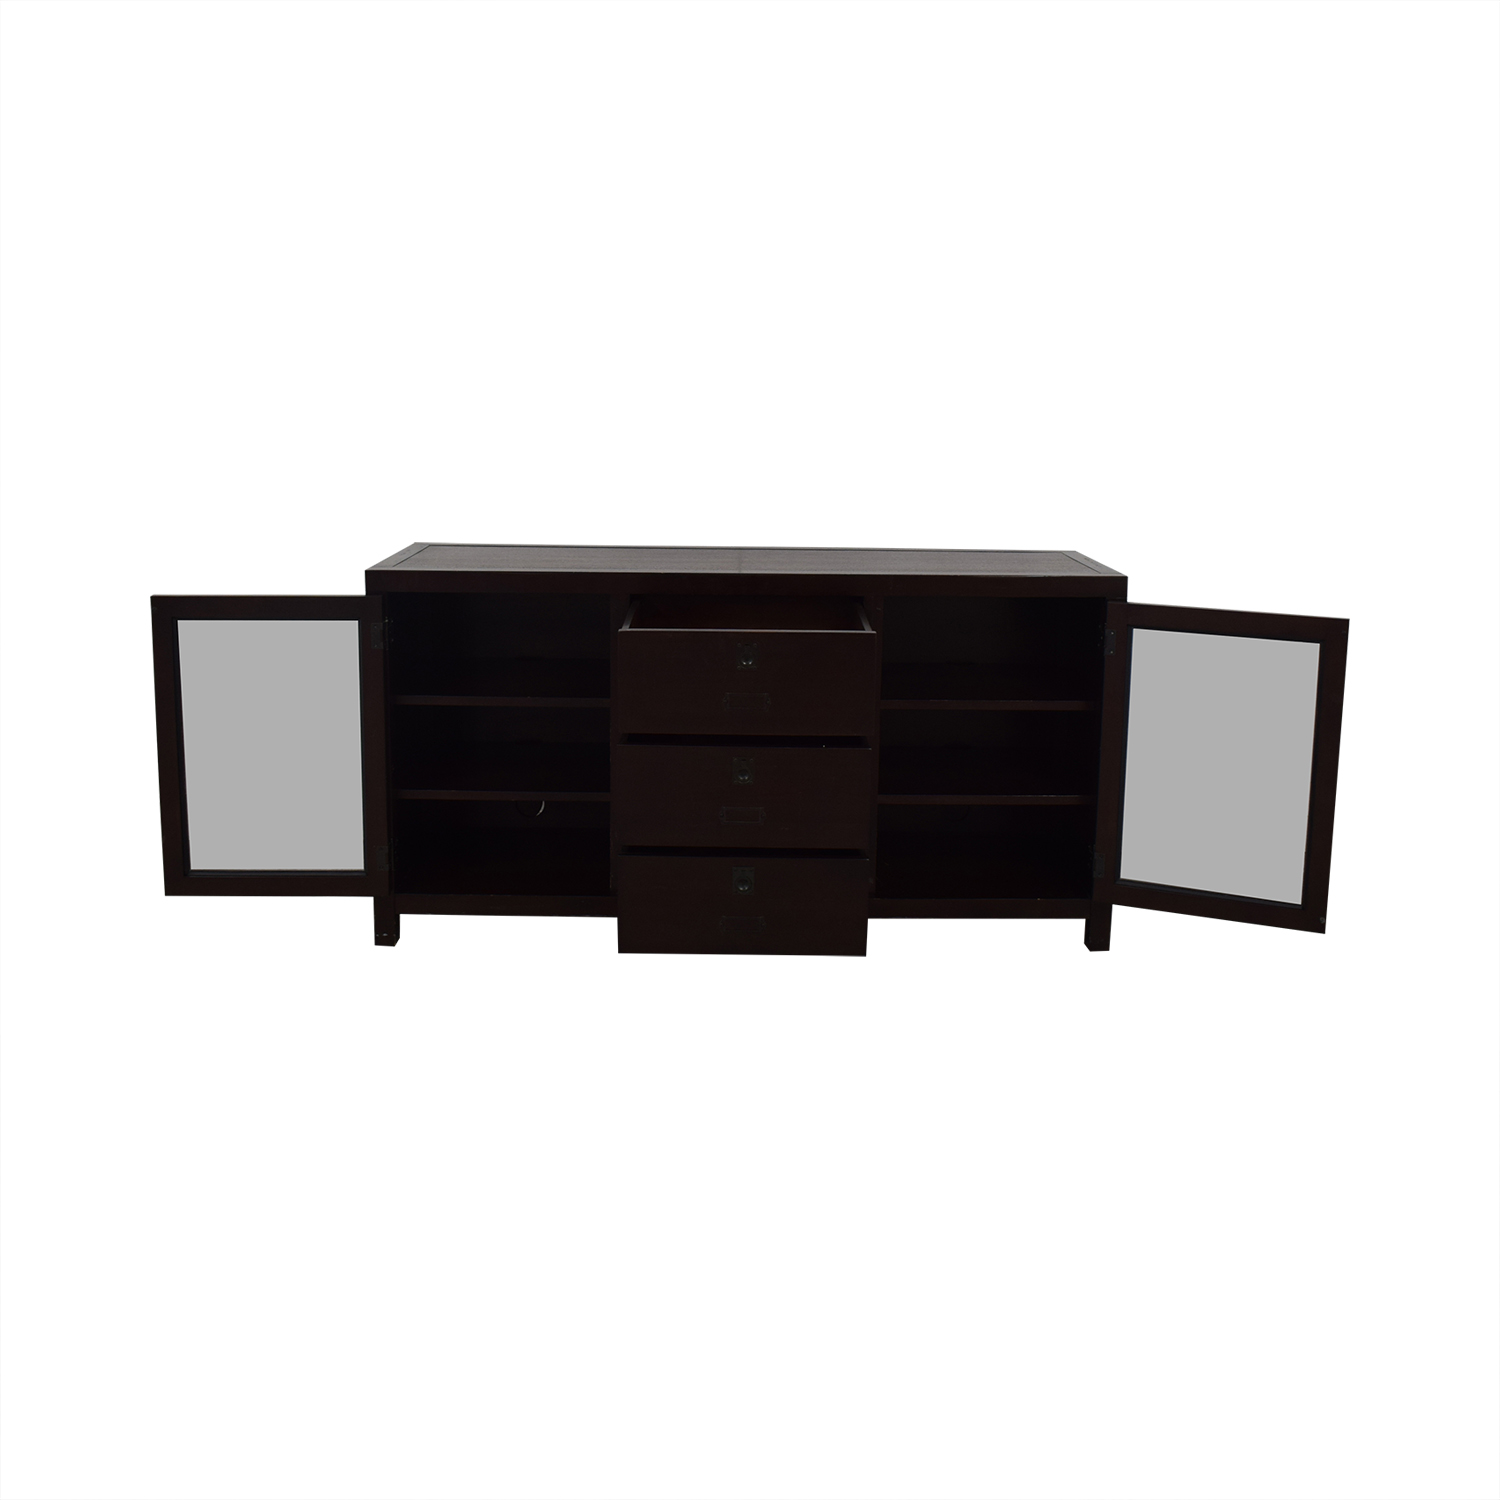 Crate & Barrel Crate & Barrel Media Console price